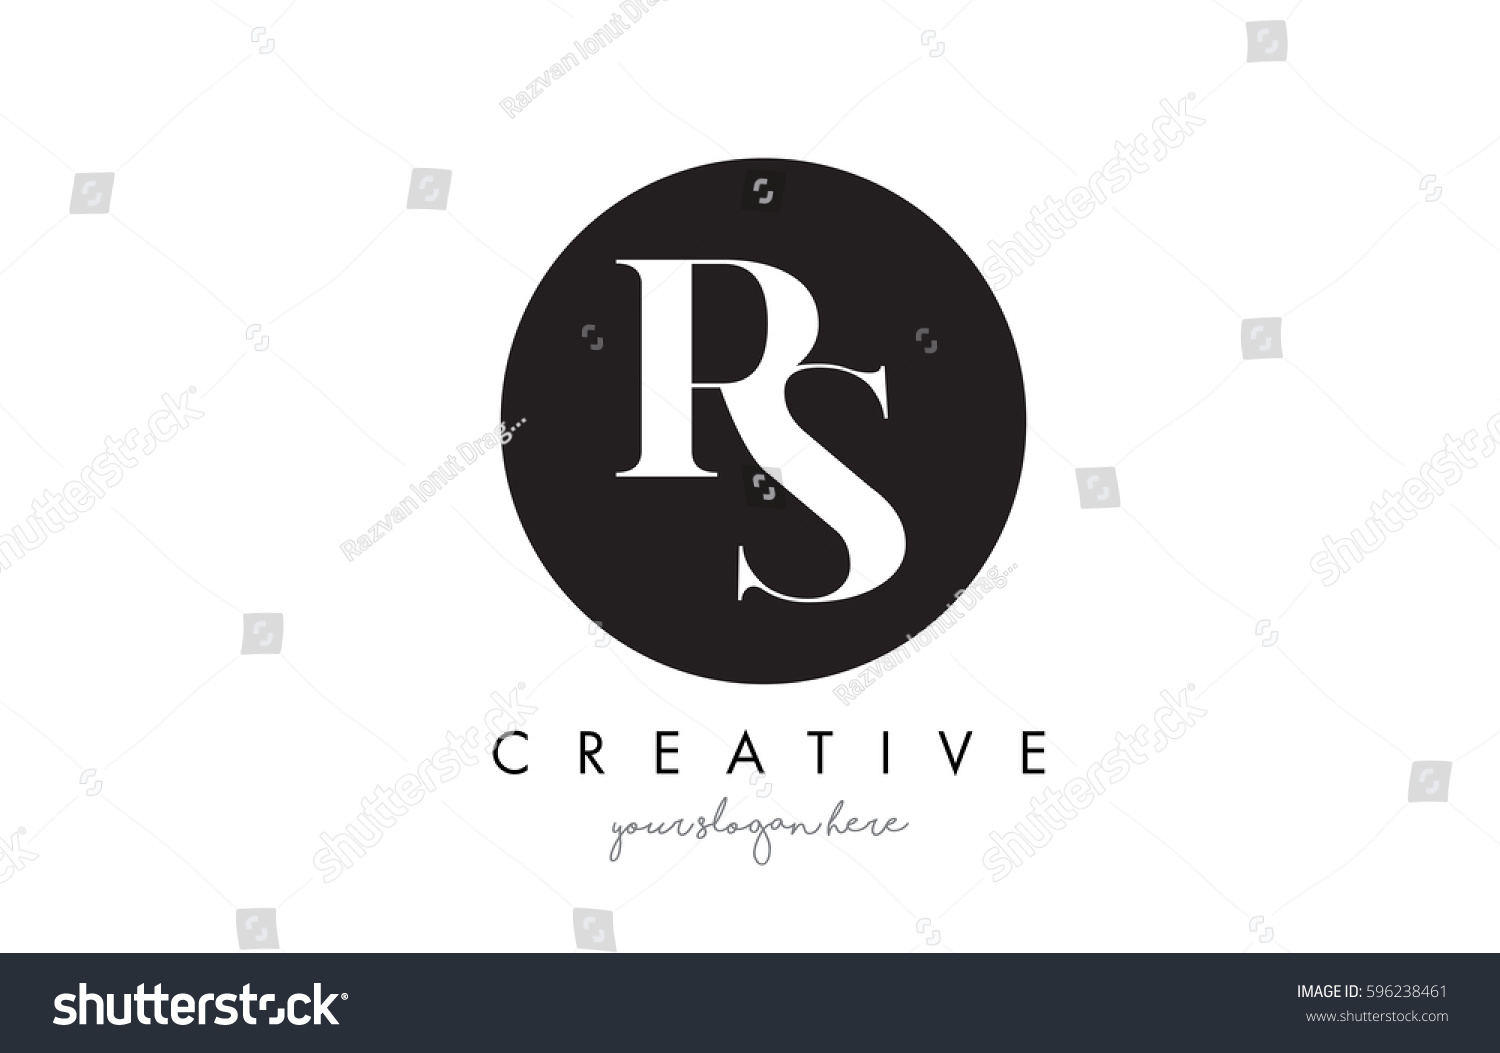 Rs letter logo design black circle stock vector 596238461 shutterstock rs letter logo design with black circle and serif font vector illustration buycottarizona Image collections